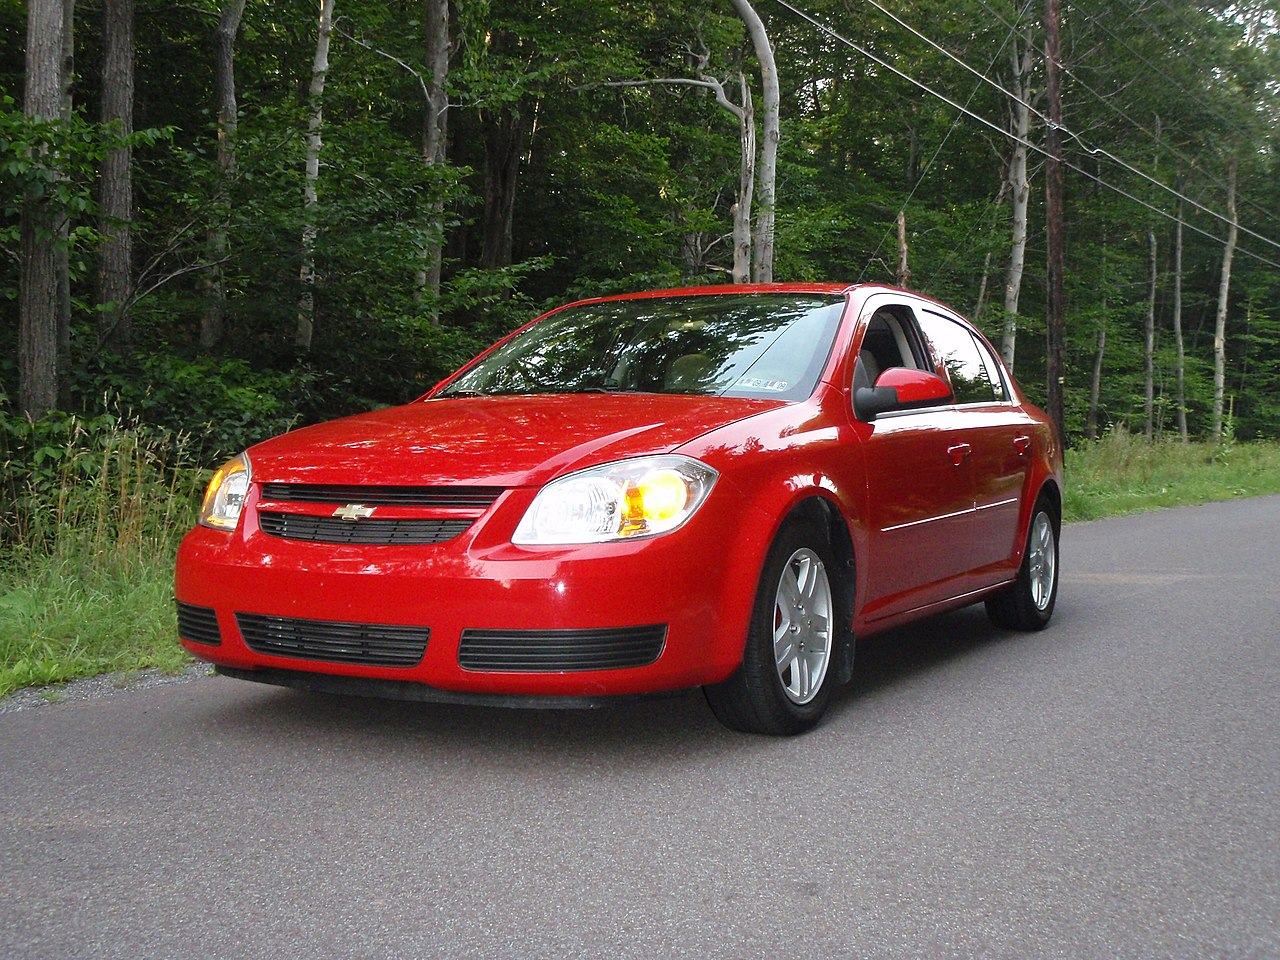 All Chevy 2005 chevy colbalt : File:2005 Chevy Cobalt LS.JPG - Wikimedia Commons